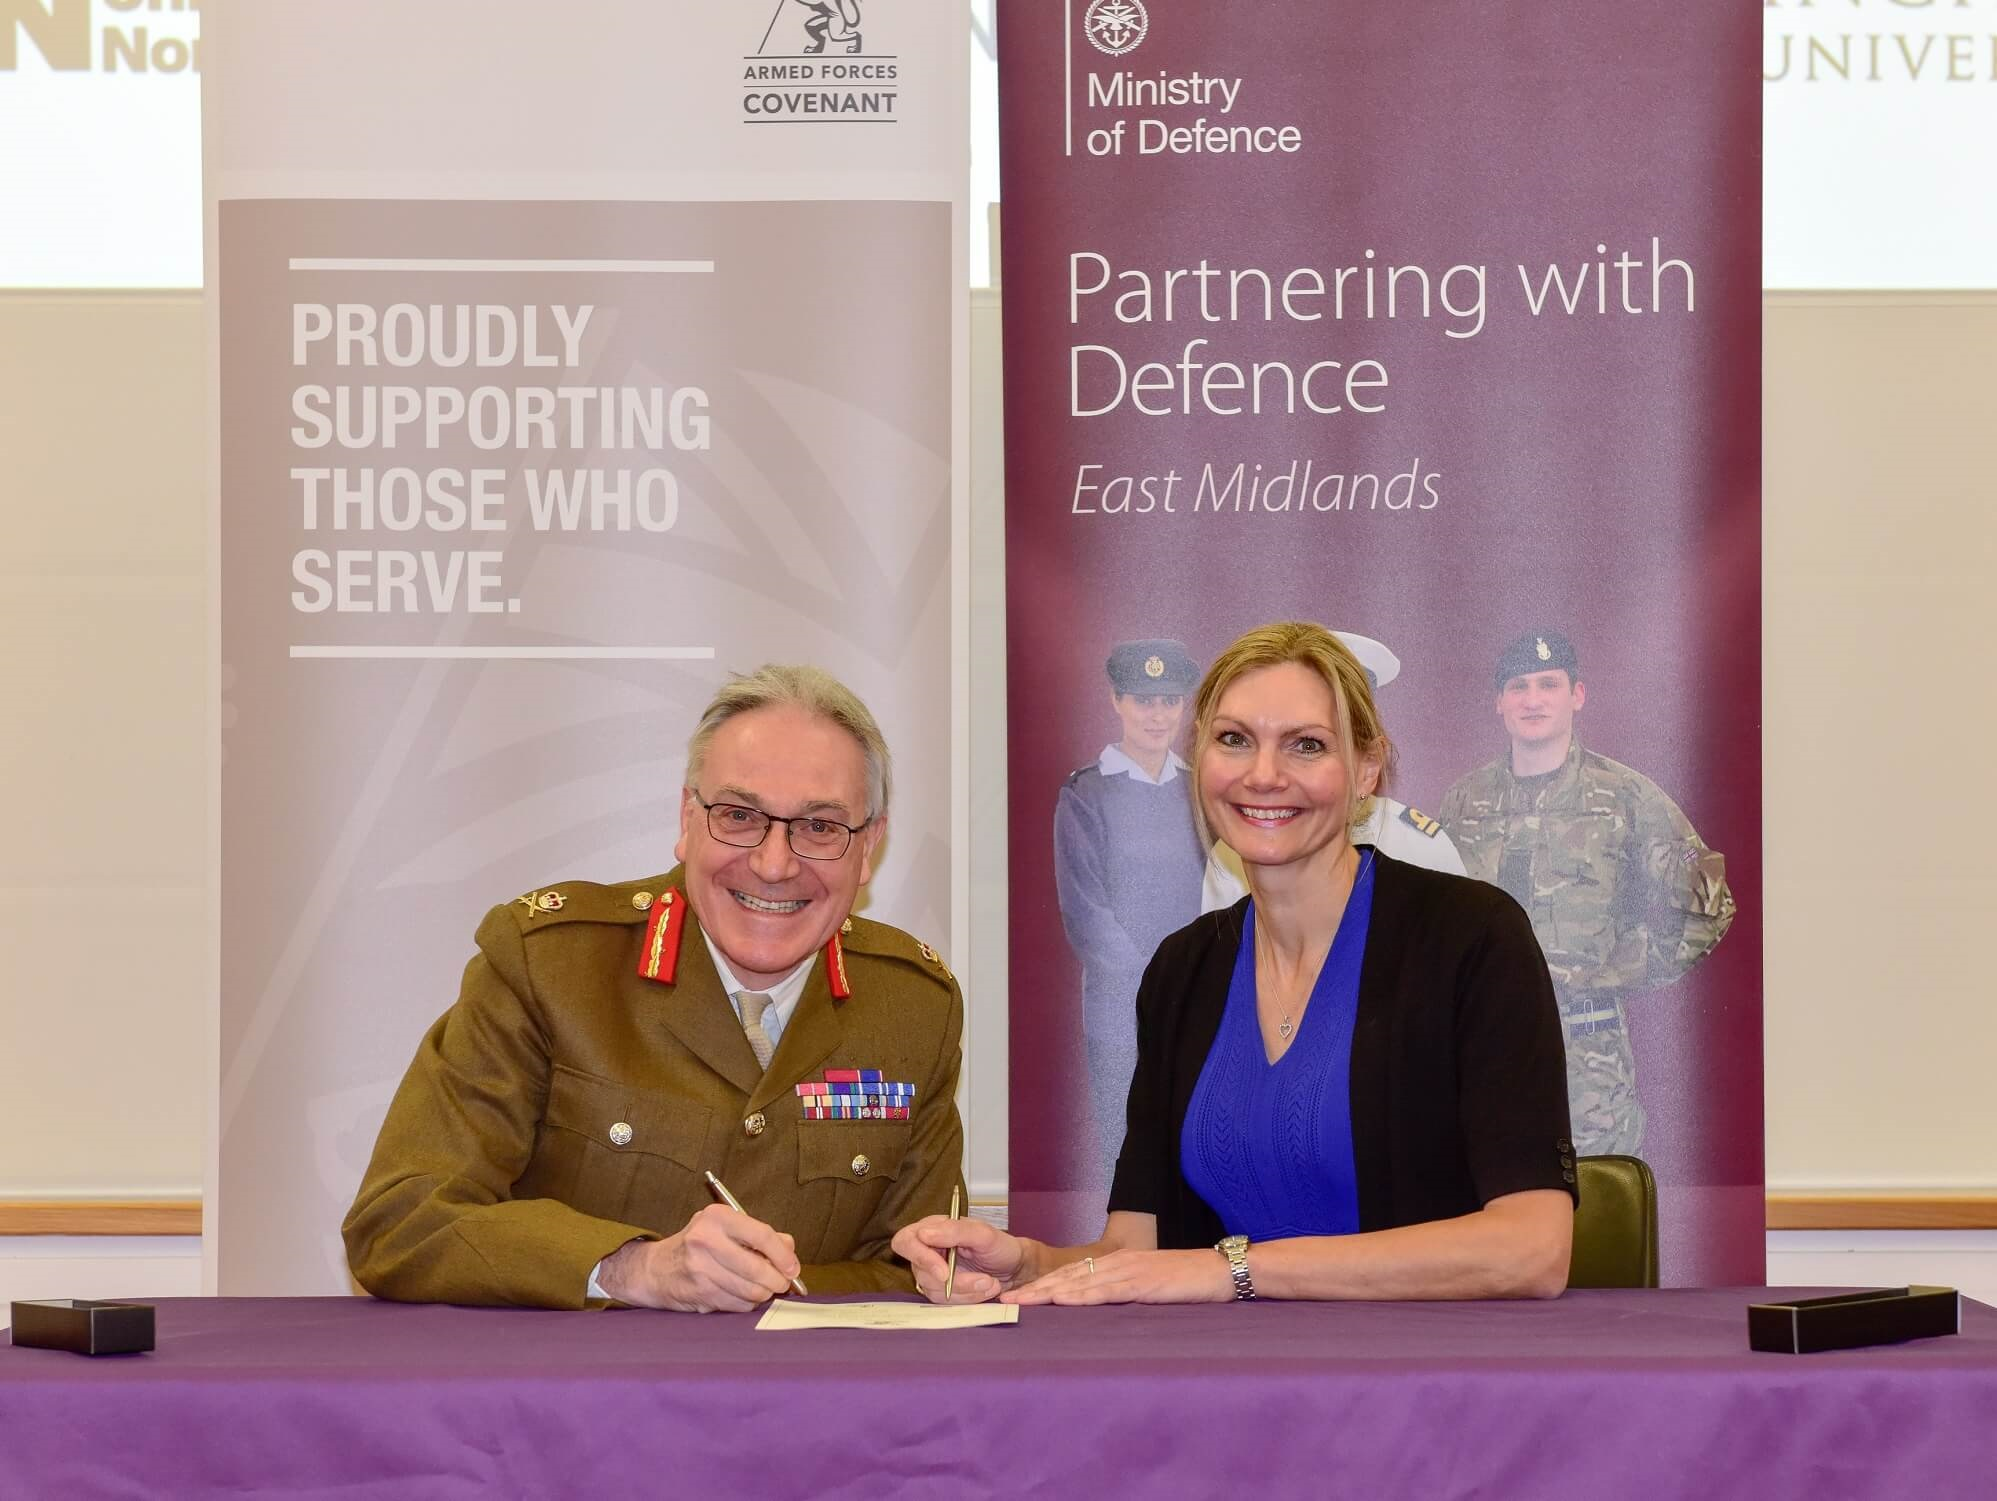 Dr Paula Holt signing the Armed Forces Covenant with Lt Gen Richard Nugee